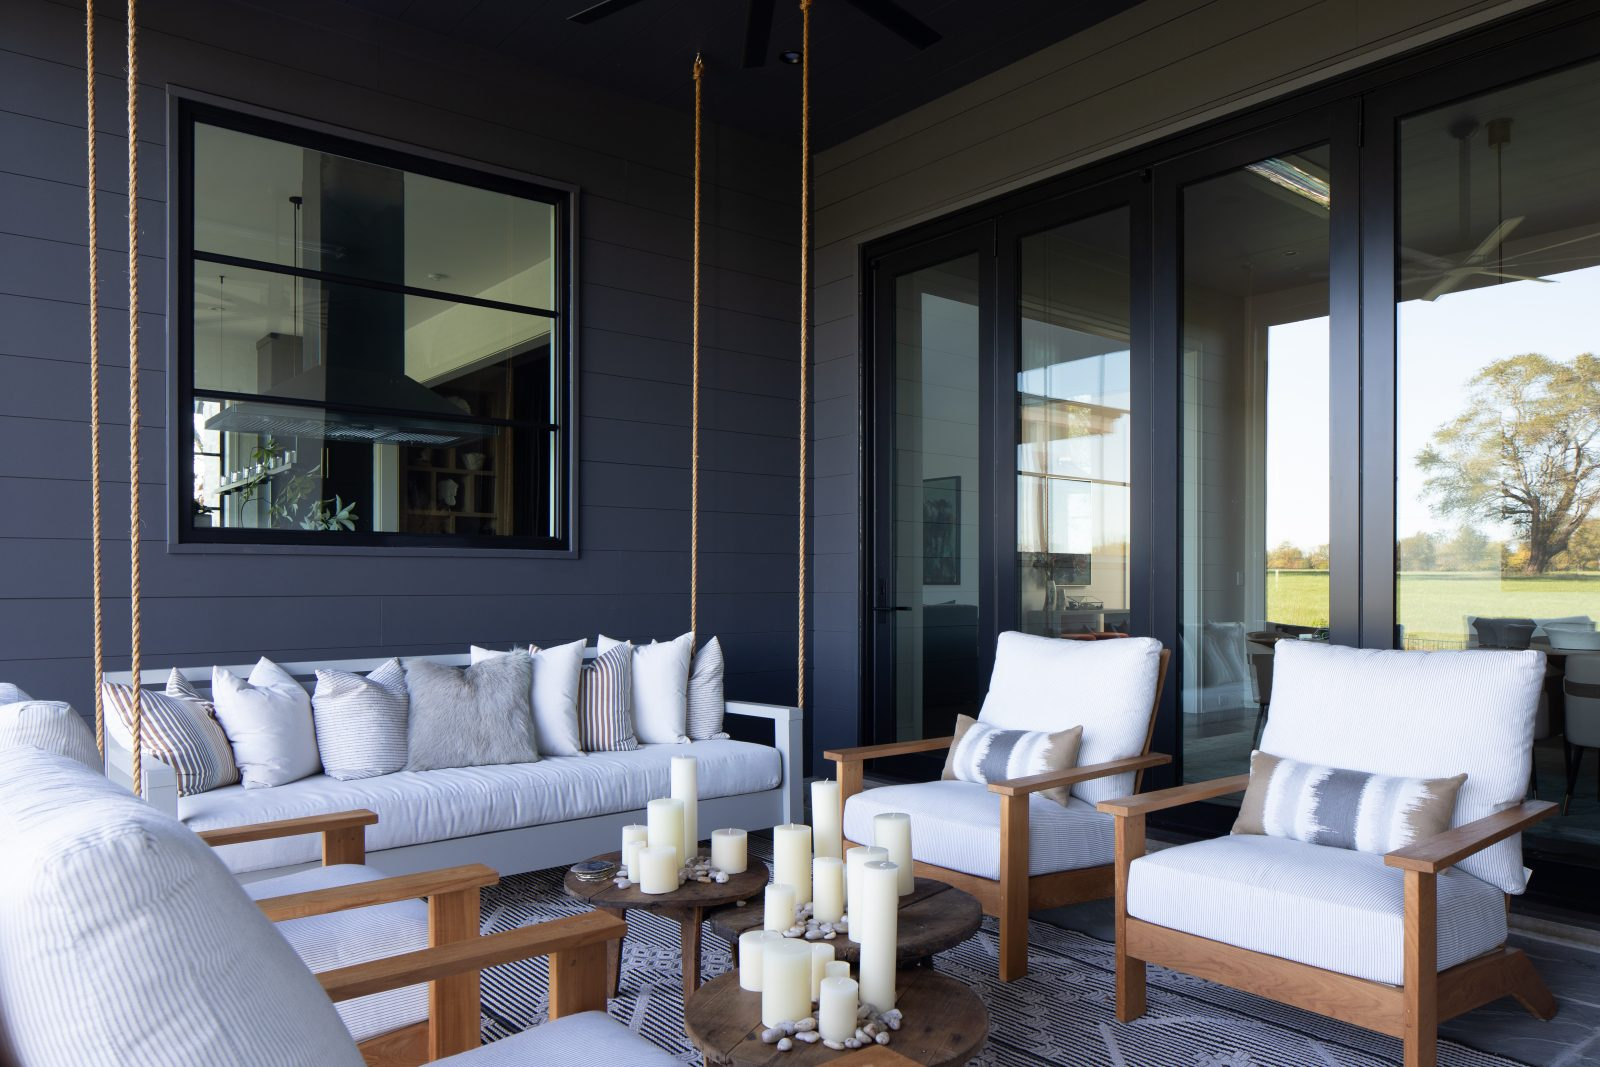 White cushioned outdoor furniture and hanging couch